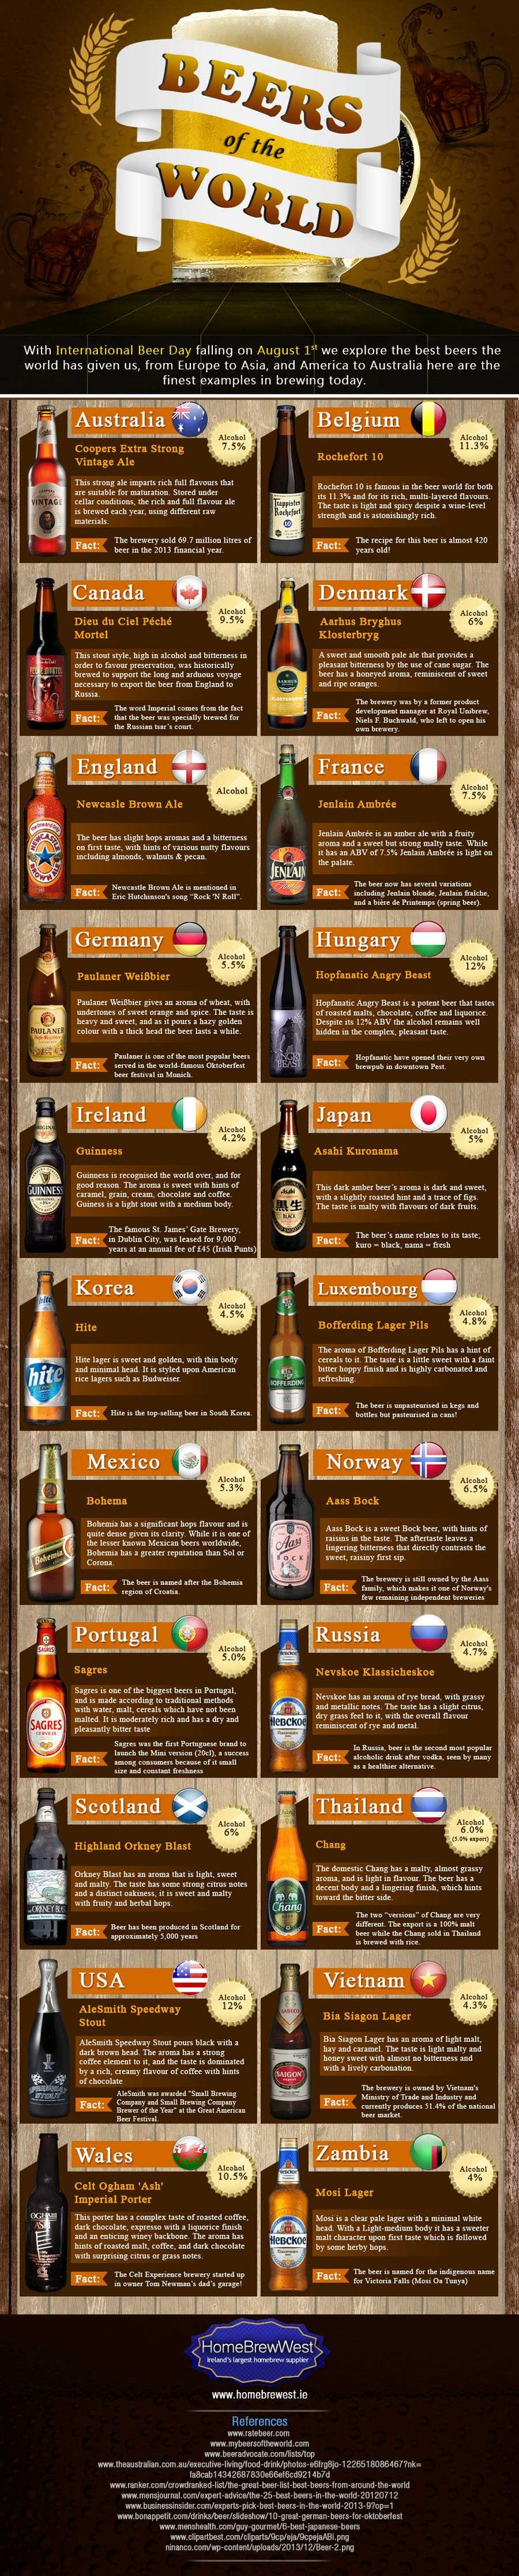 "Brian O'Shea from HomeBrewWest Ireland sent us this infographic. With International Beer Day taking place today, August 1st, we decided to celebrate the great beers across the globe in our infographic ""Beers of the World""."